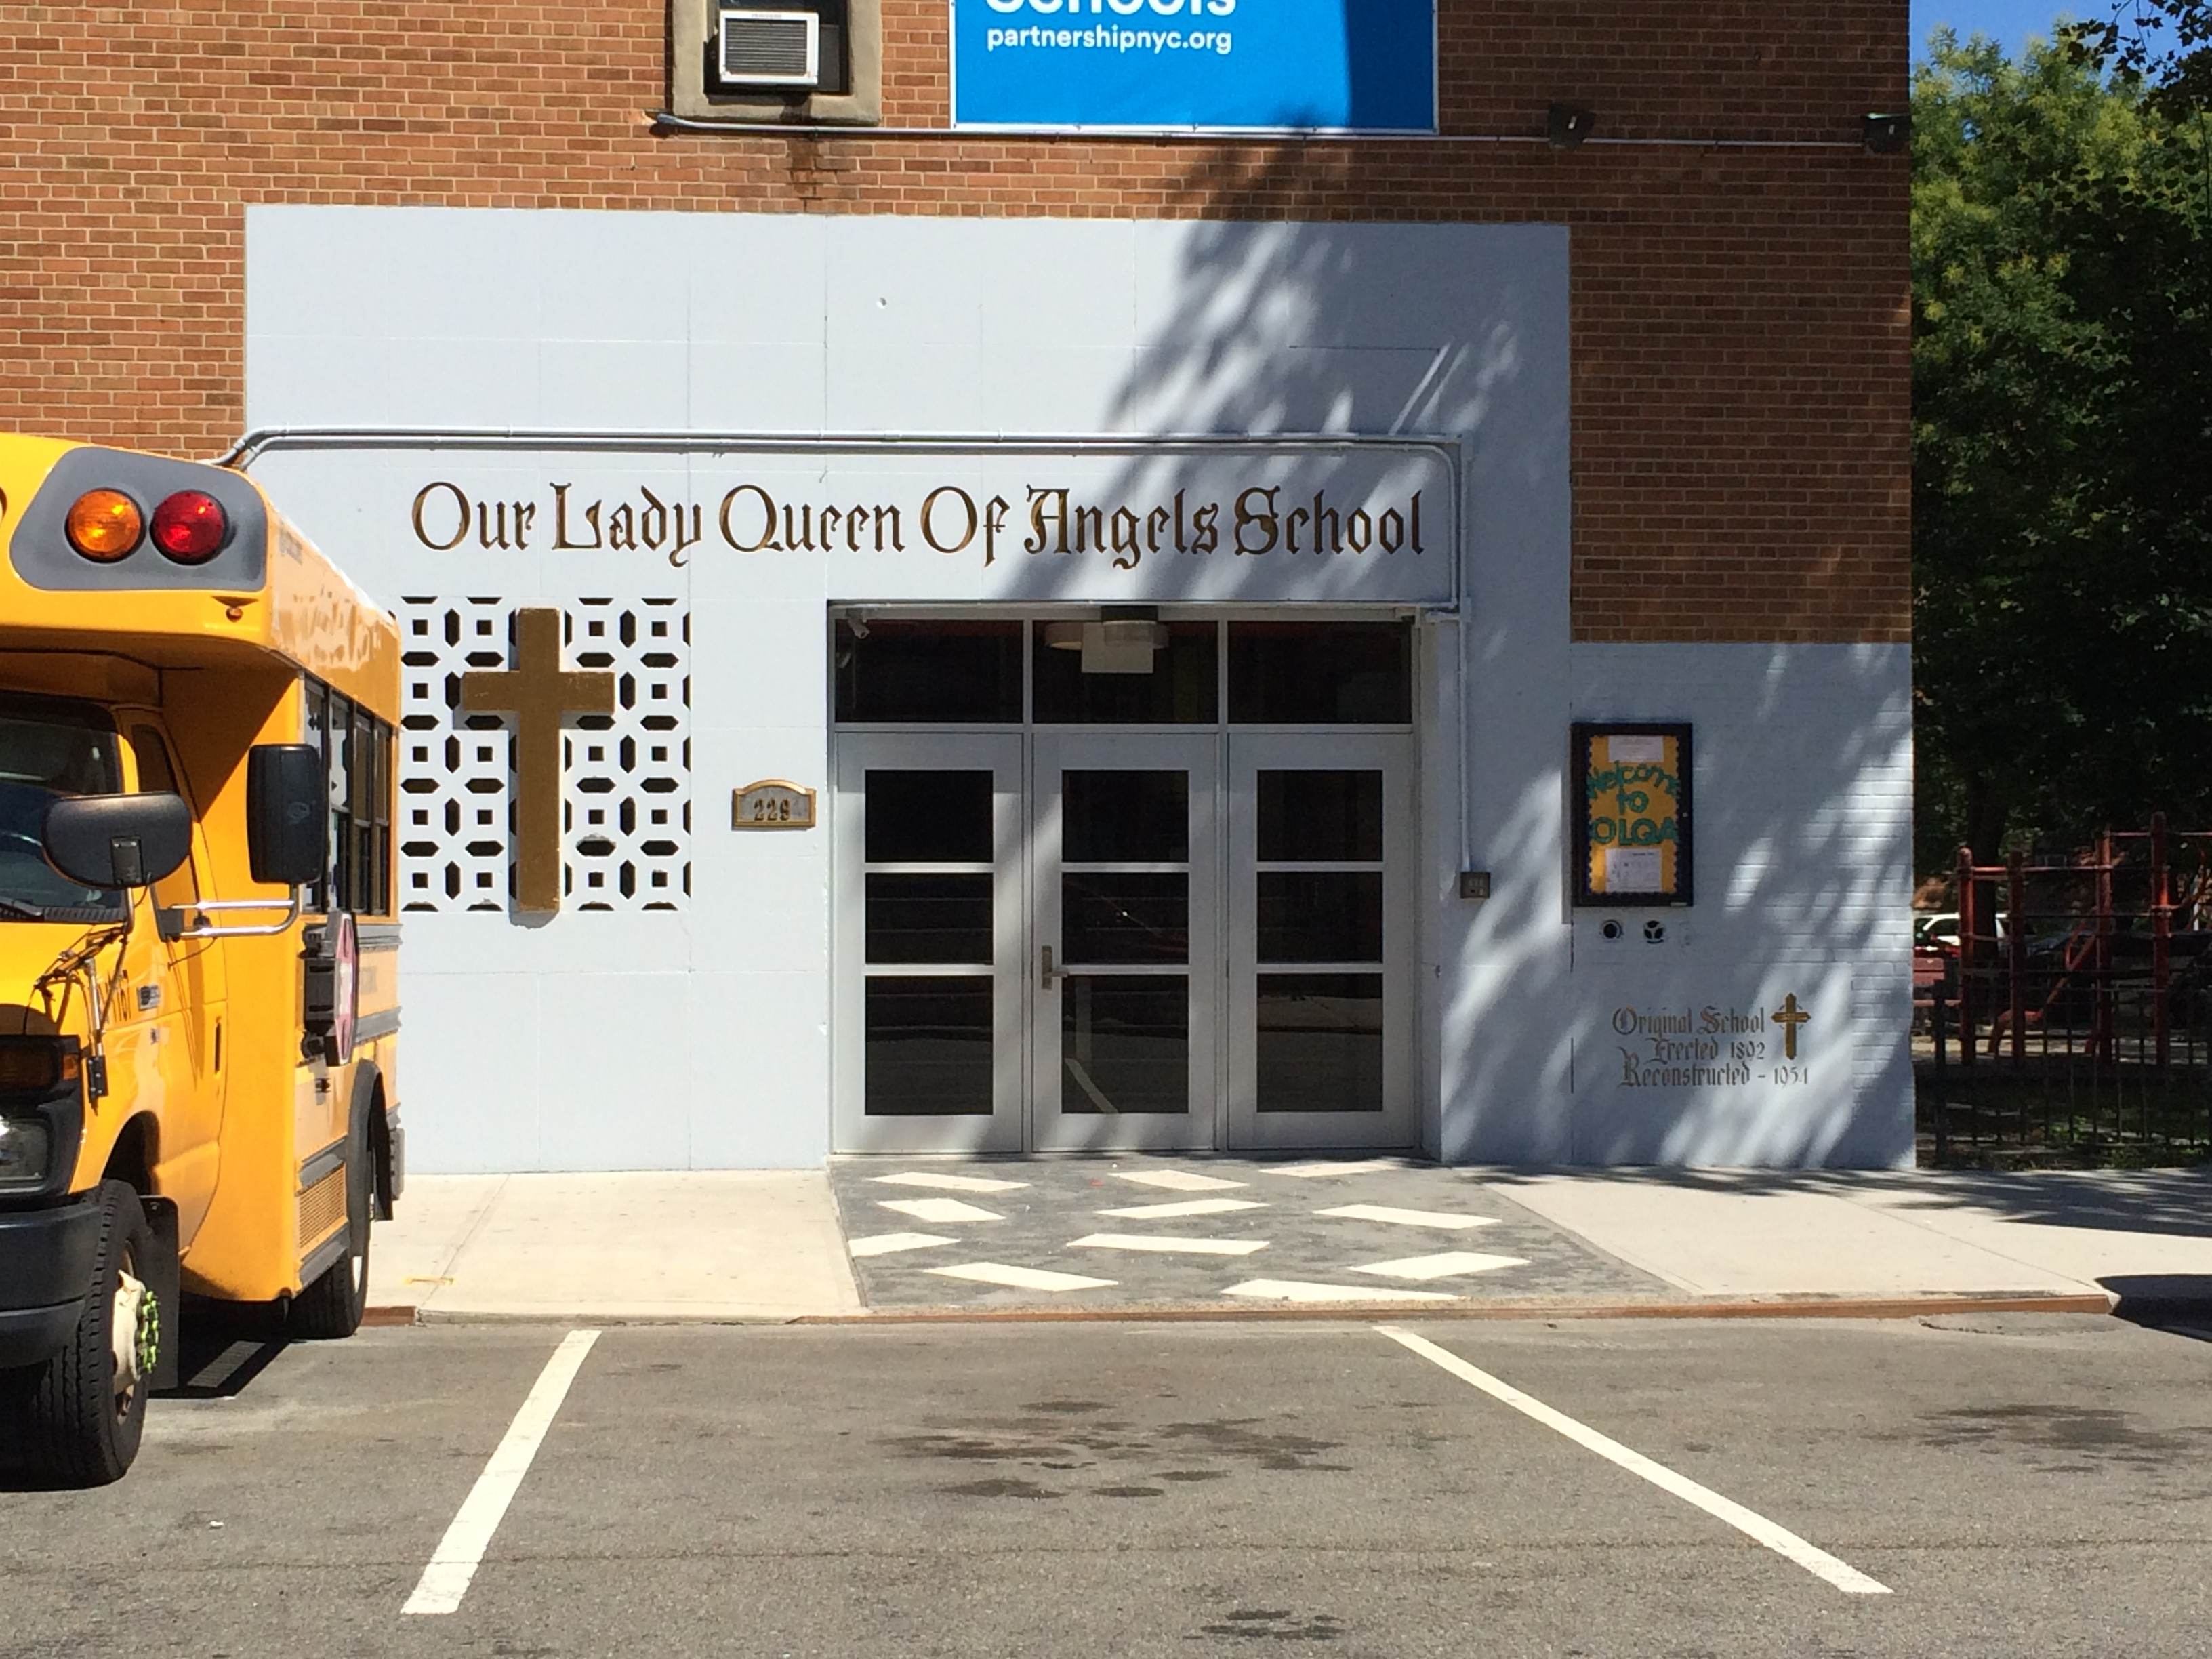 Pope Francis will visit Our Lady Queen of Angels school in East Harlem in New York City on Sept. 25 during his five-day visit to the United States.